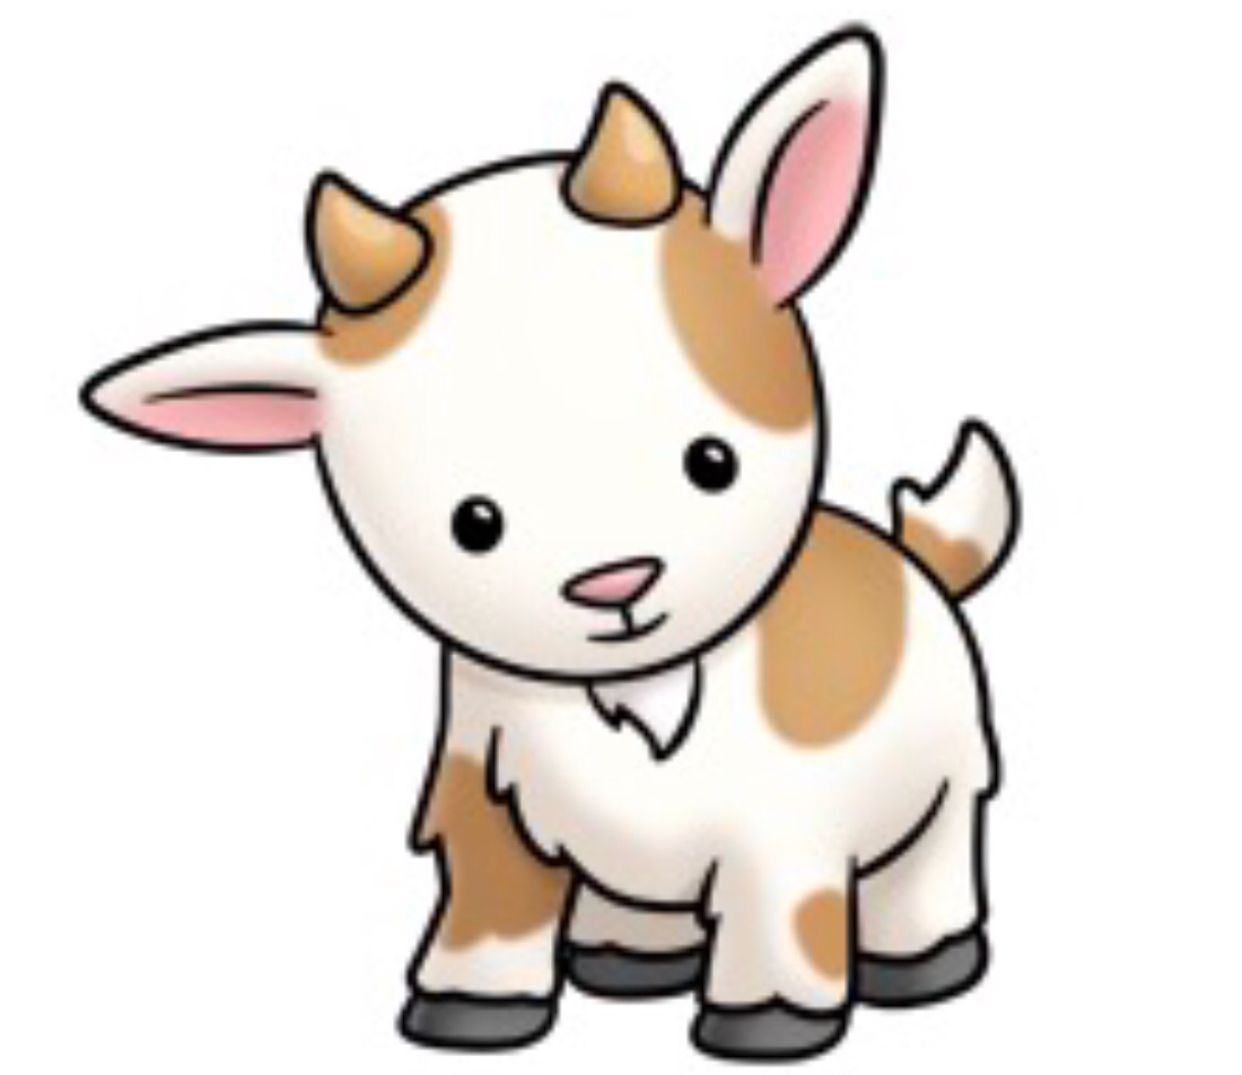 Baby goat face clipart vector transparent library Pin by ALYSSA WILSON on Alyssa Marie   Cute cartoon animals, Cute ... vector transparent library